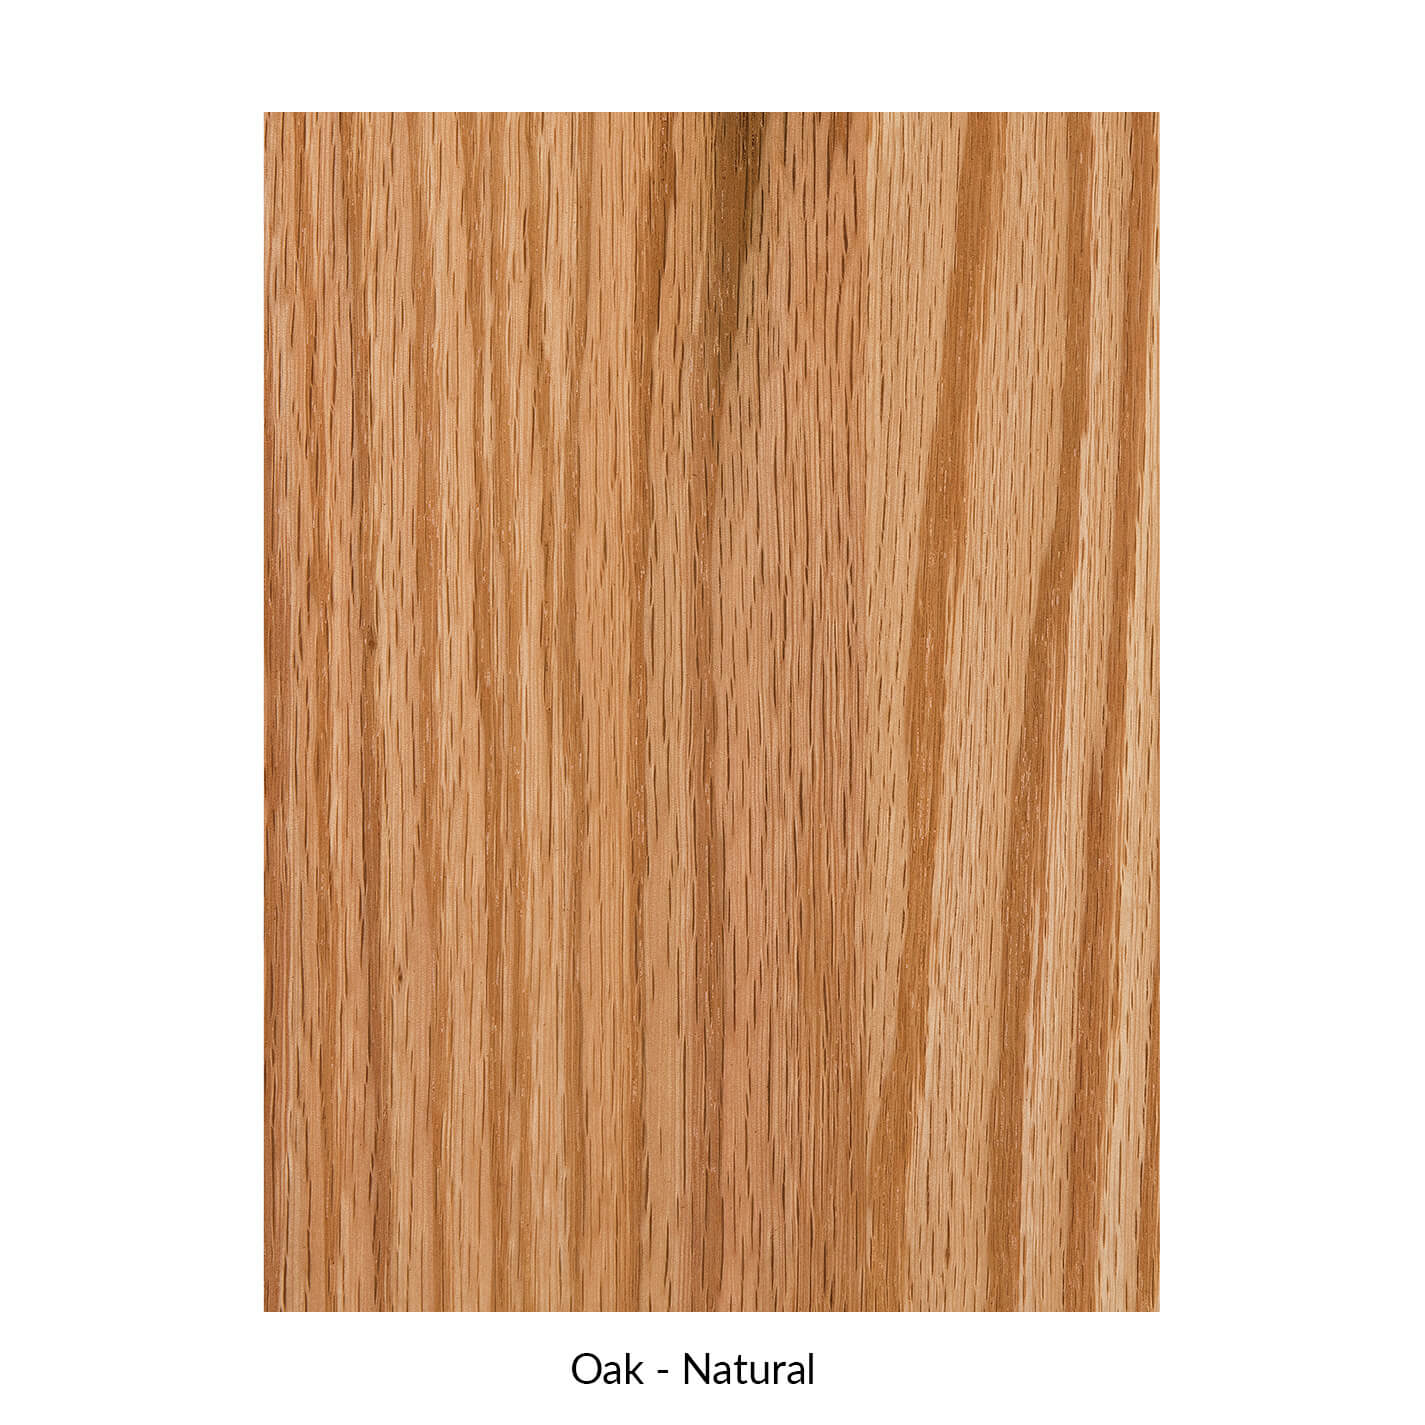 spectrum-oak-natural.jpg